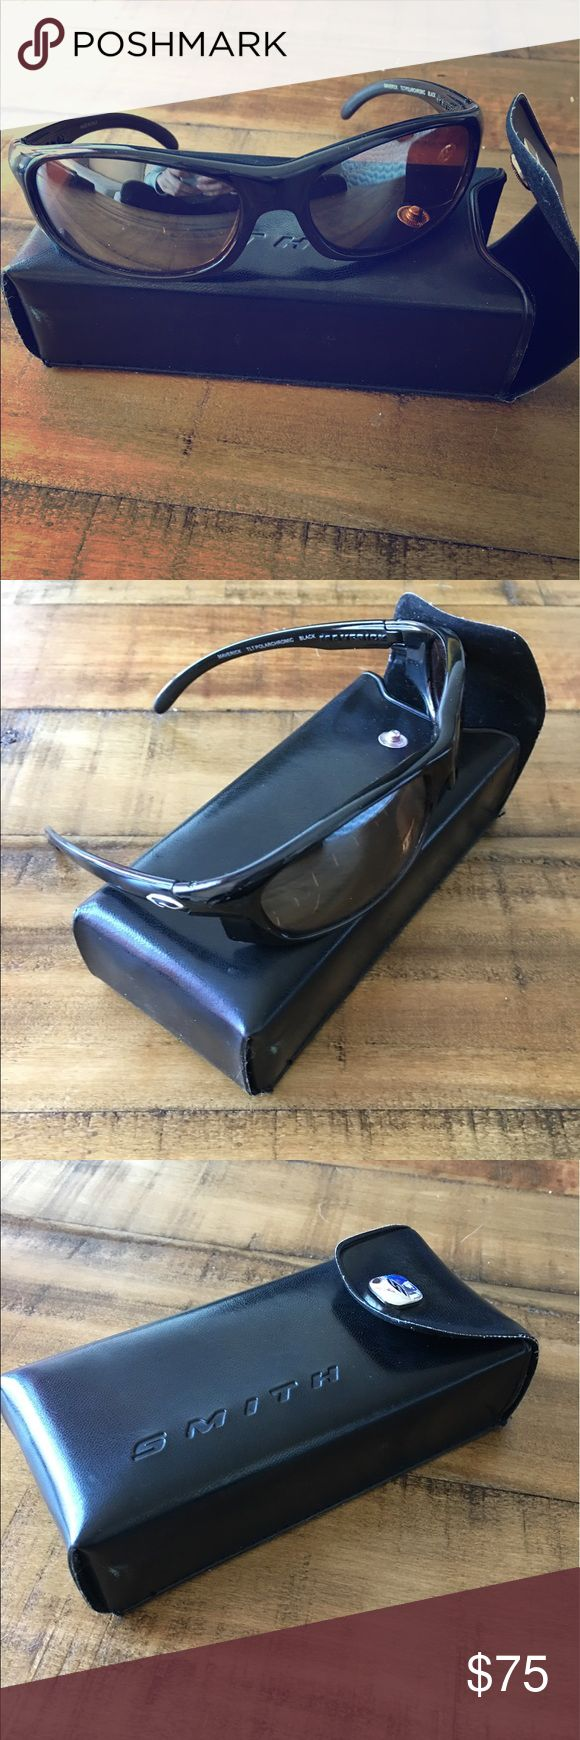 Smith Optics Maverick Sunglasses Gently worn, black frames with brown tinted/polarized lenses. Smith Optics Accessories Sunglasses